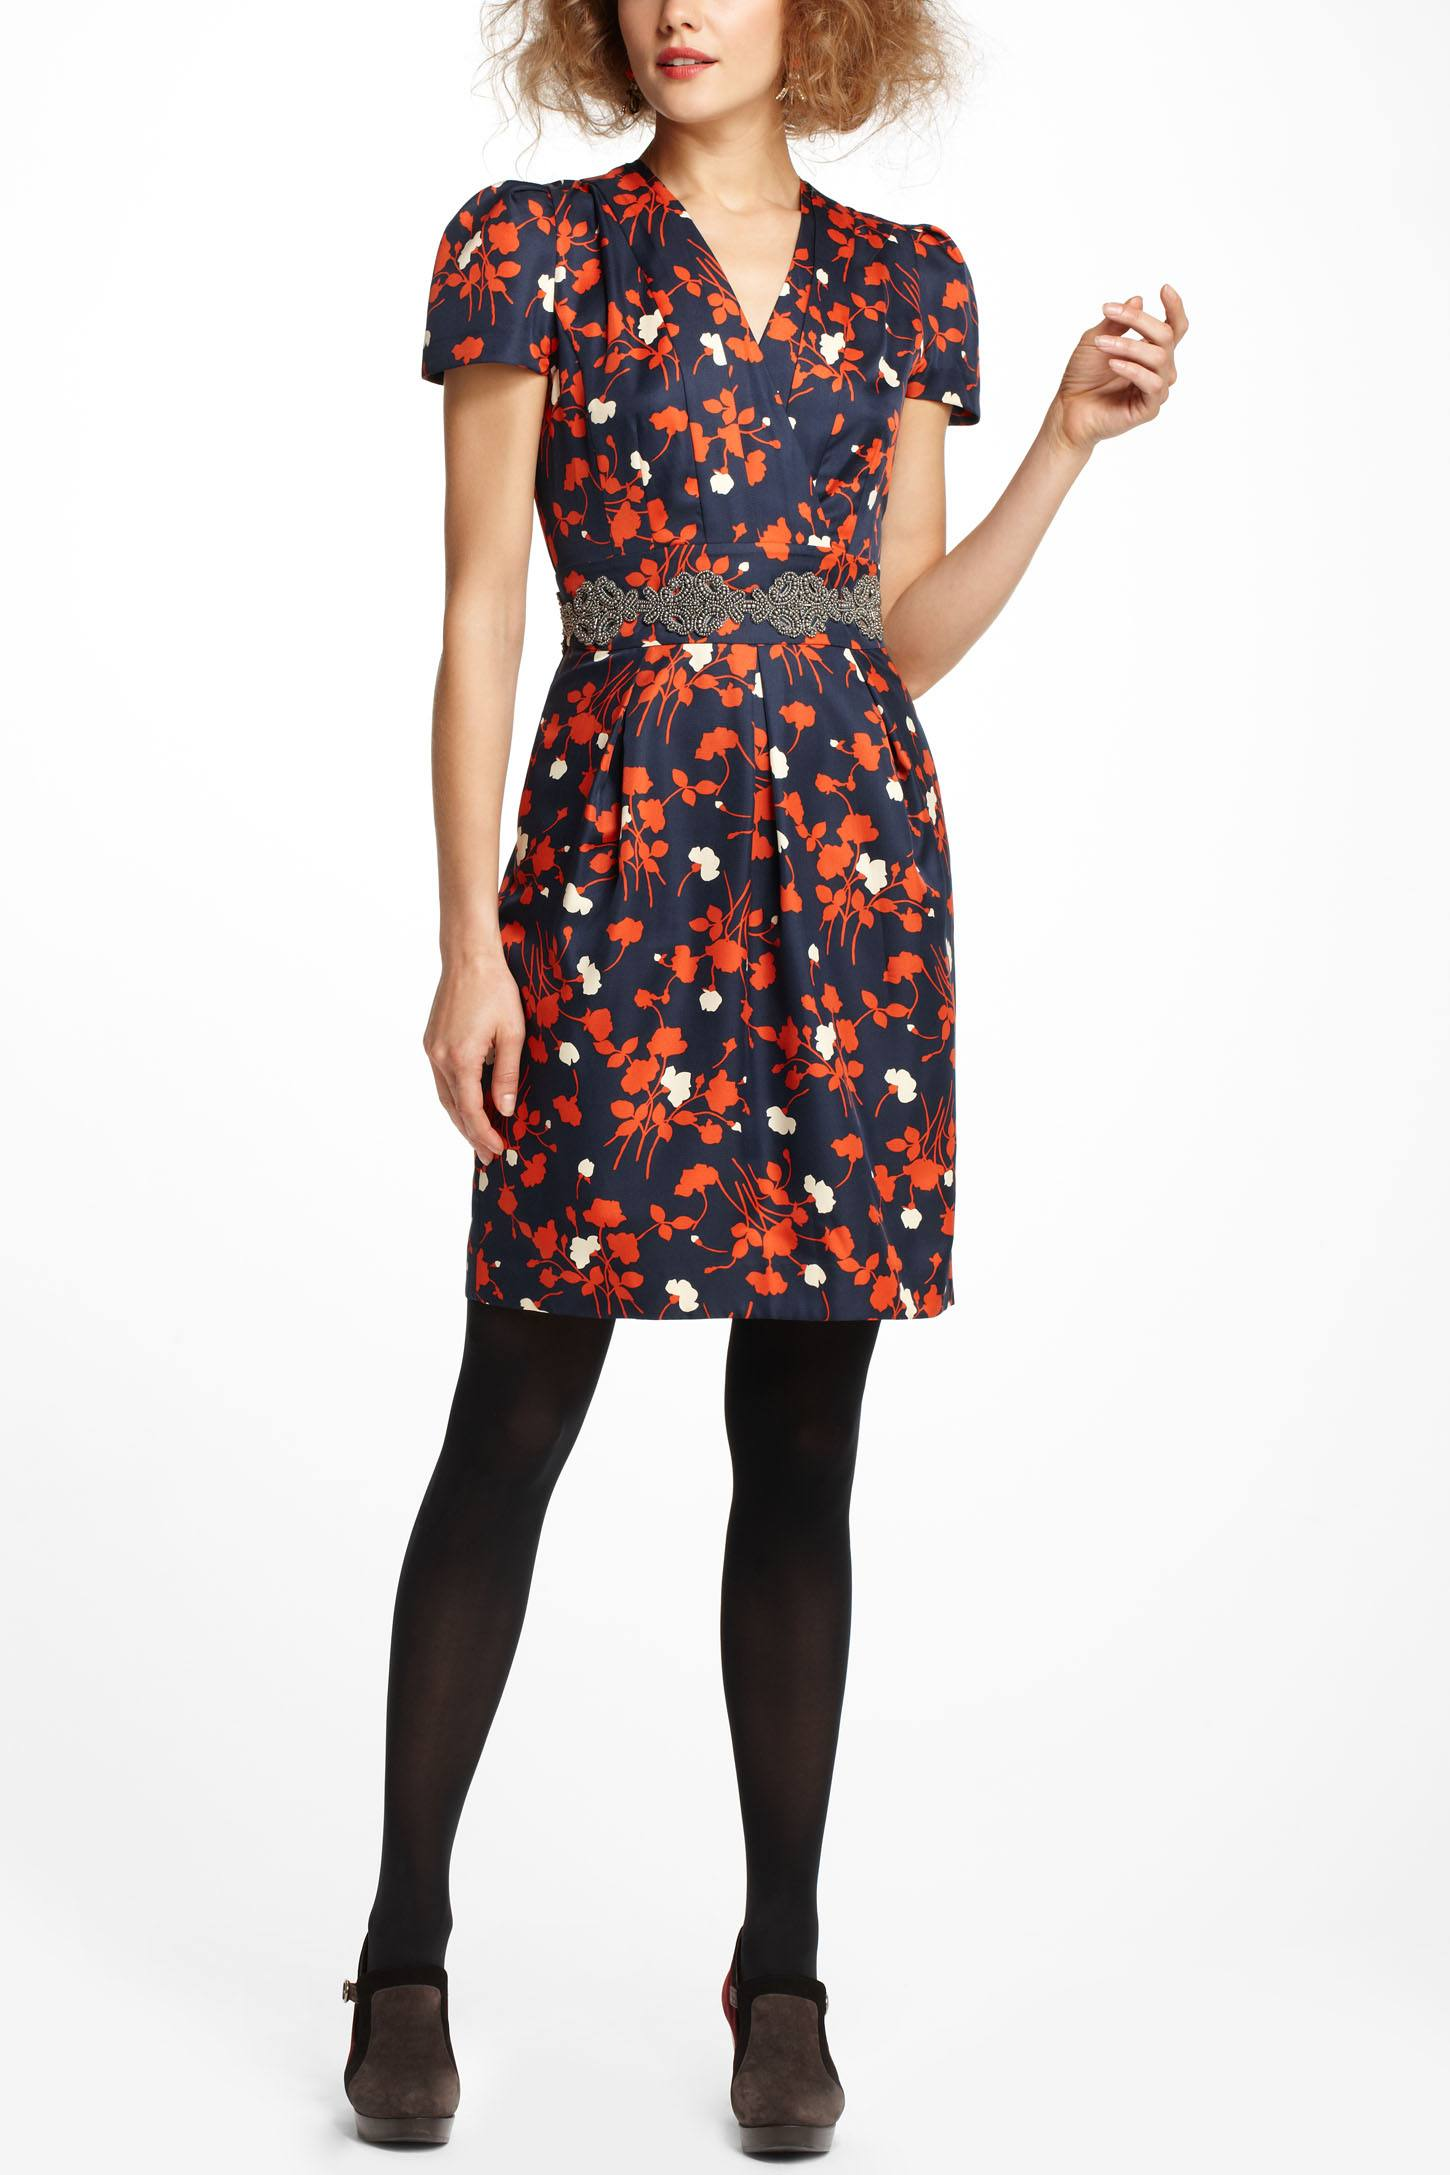 Hi There by Karen Walker Tossed Bouquet Dress - how to wear floral prints to work - professional floral print dress